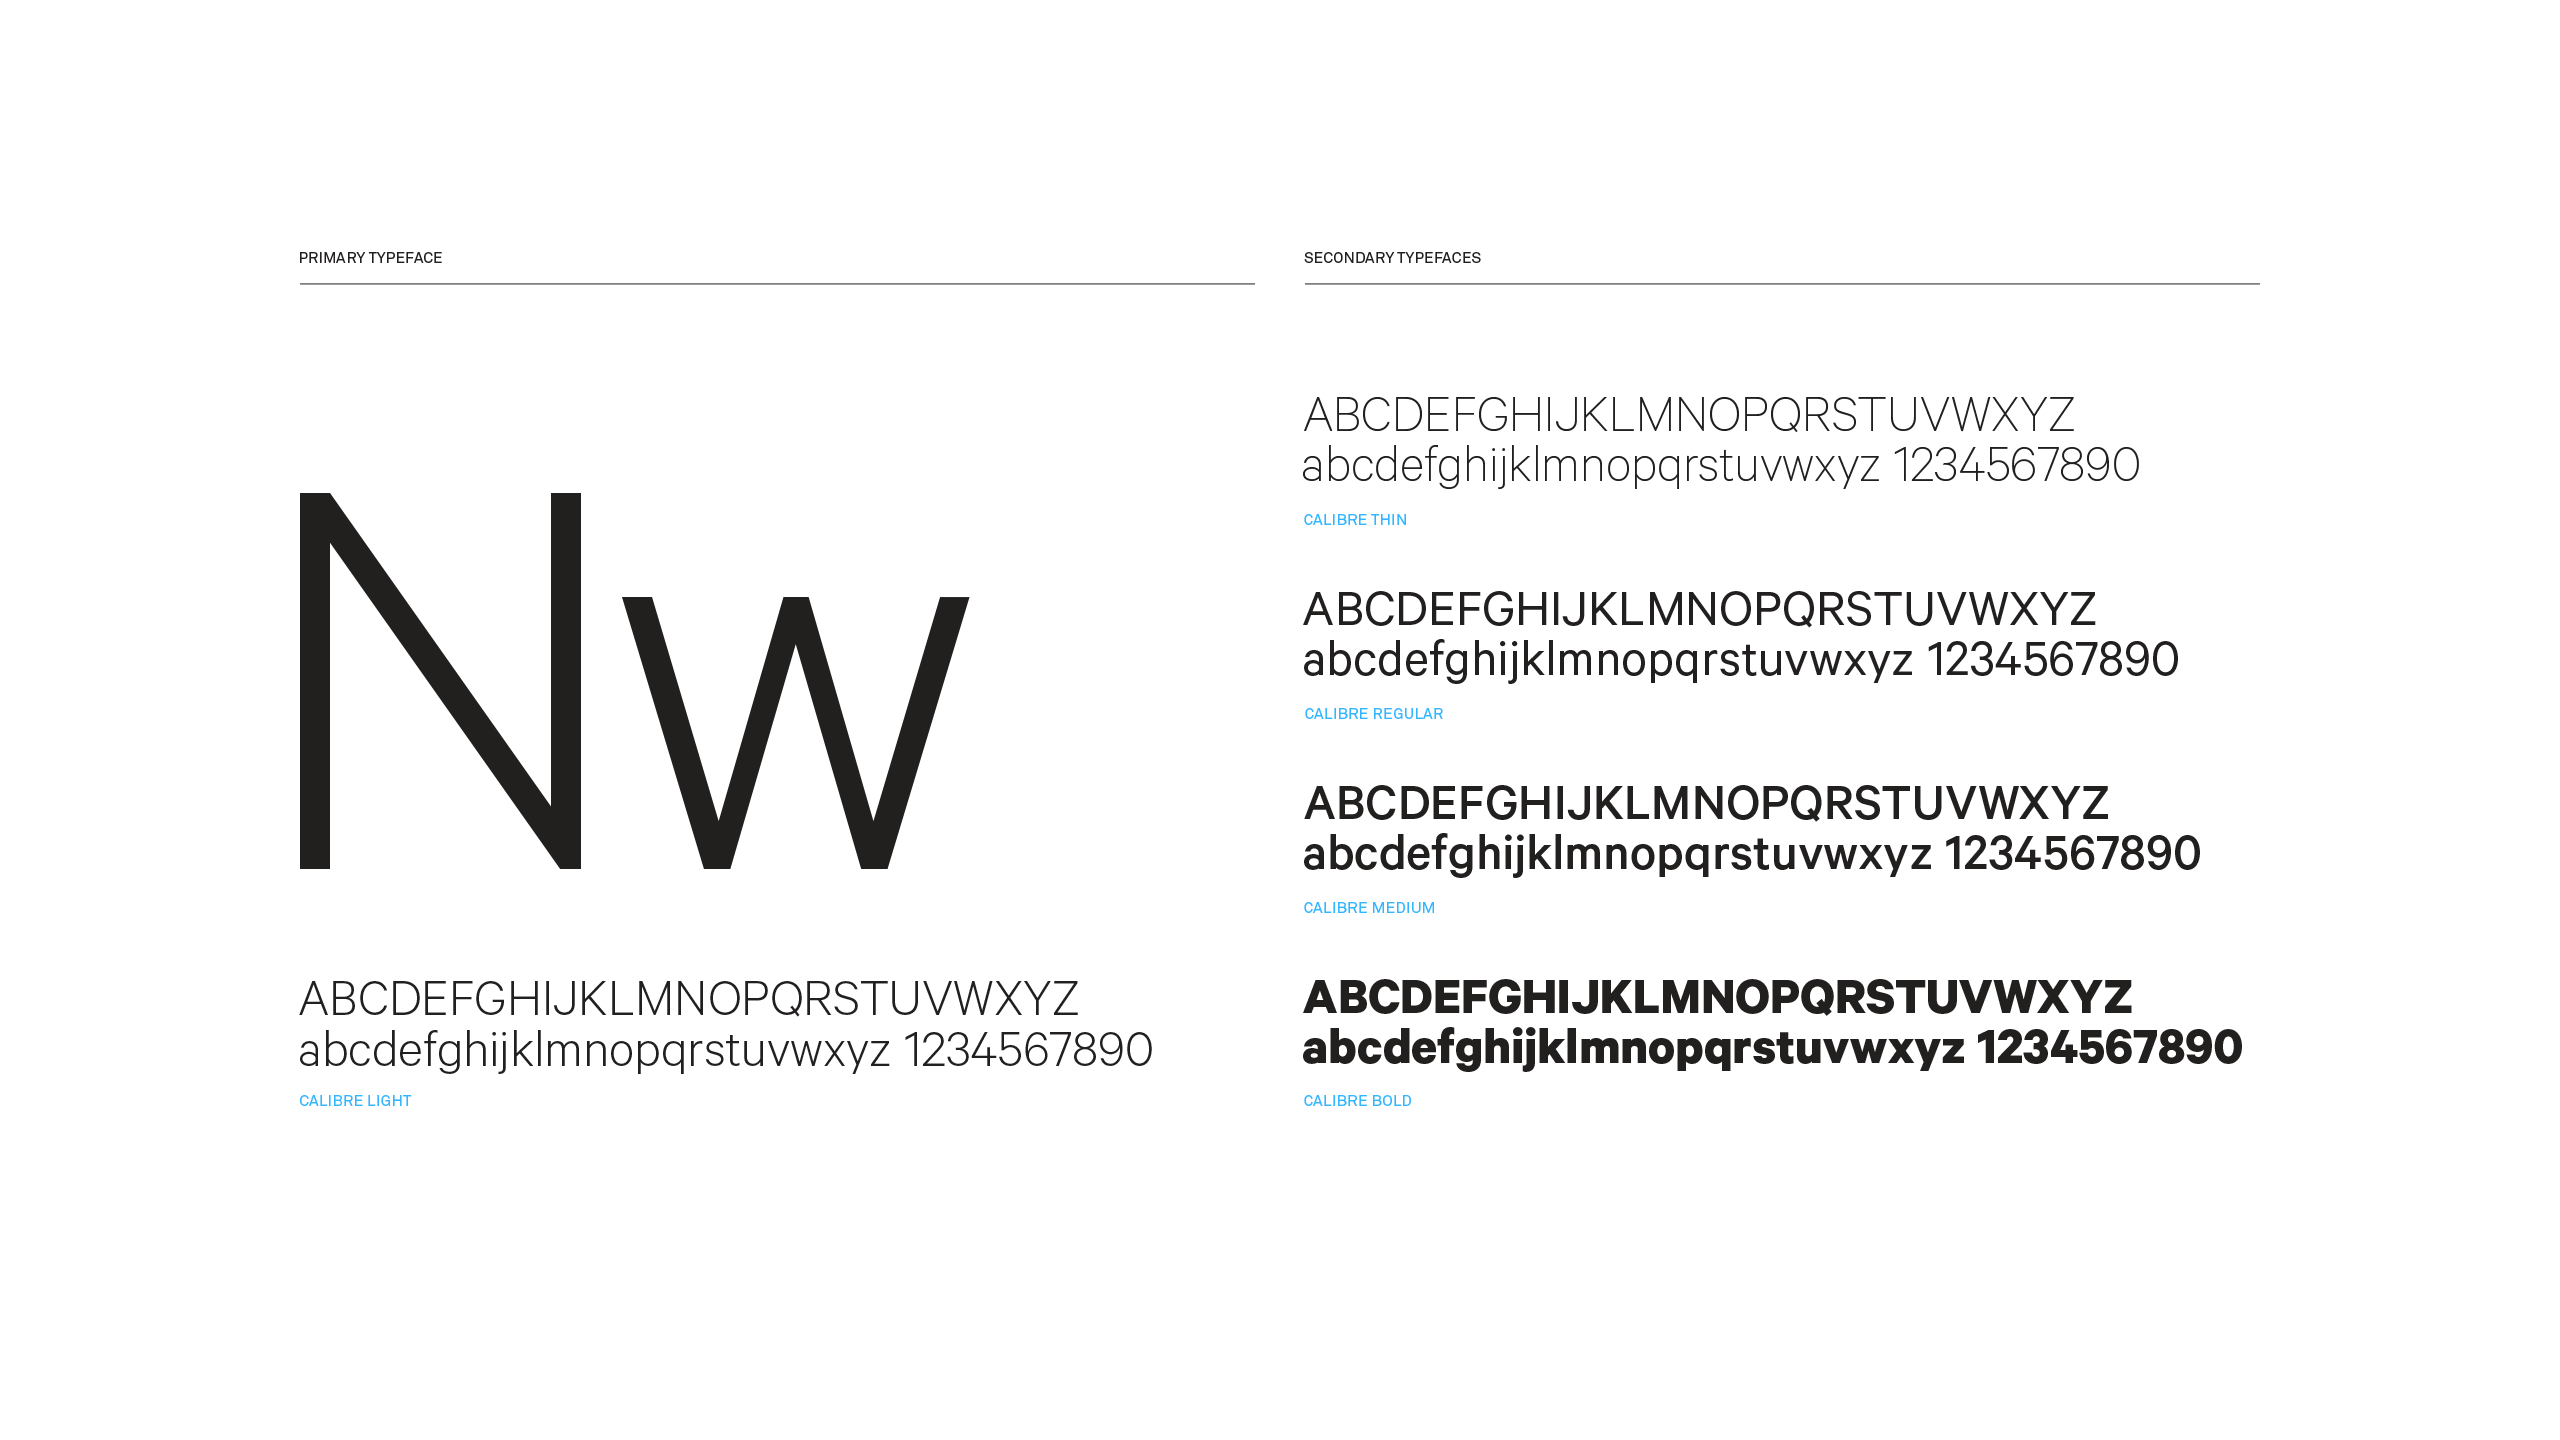 NanaWall Brand System Typefaces